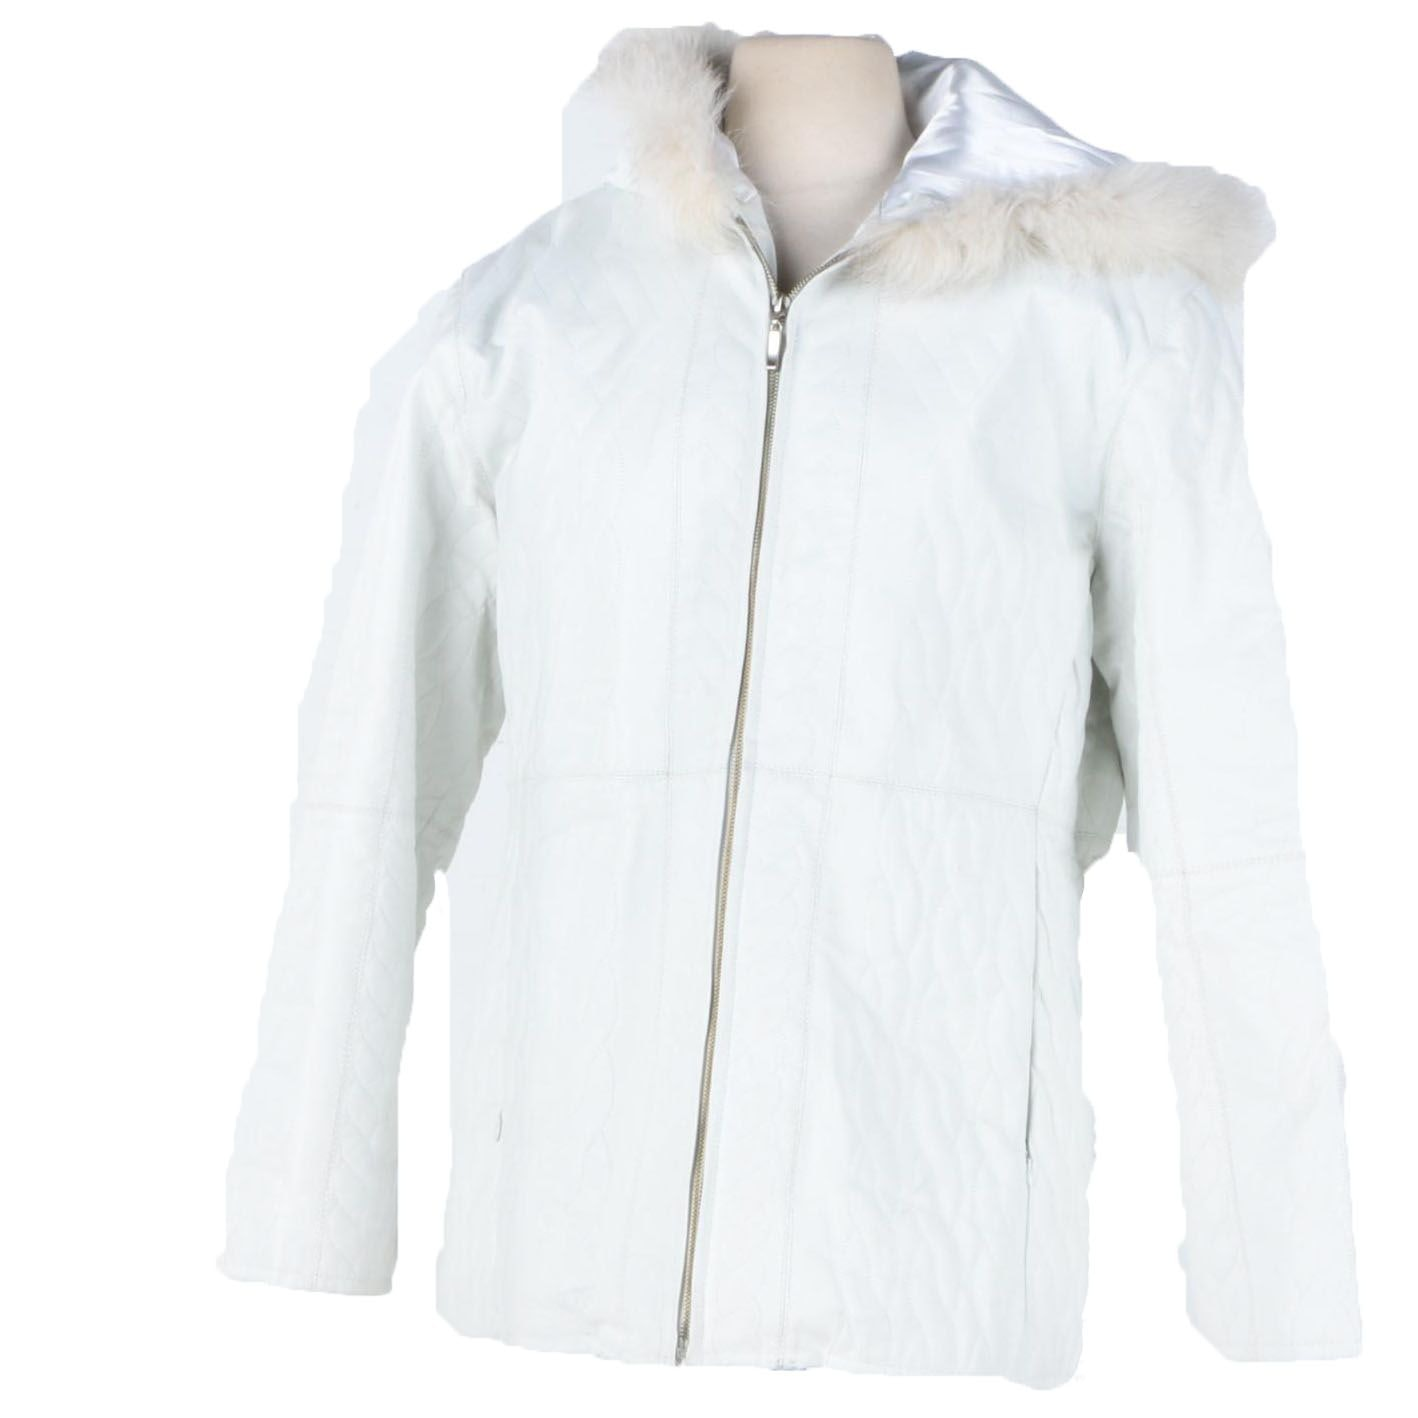 Women's White Leather Winter Coat